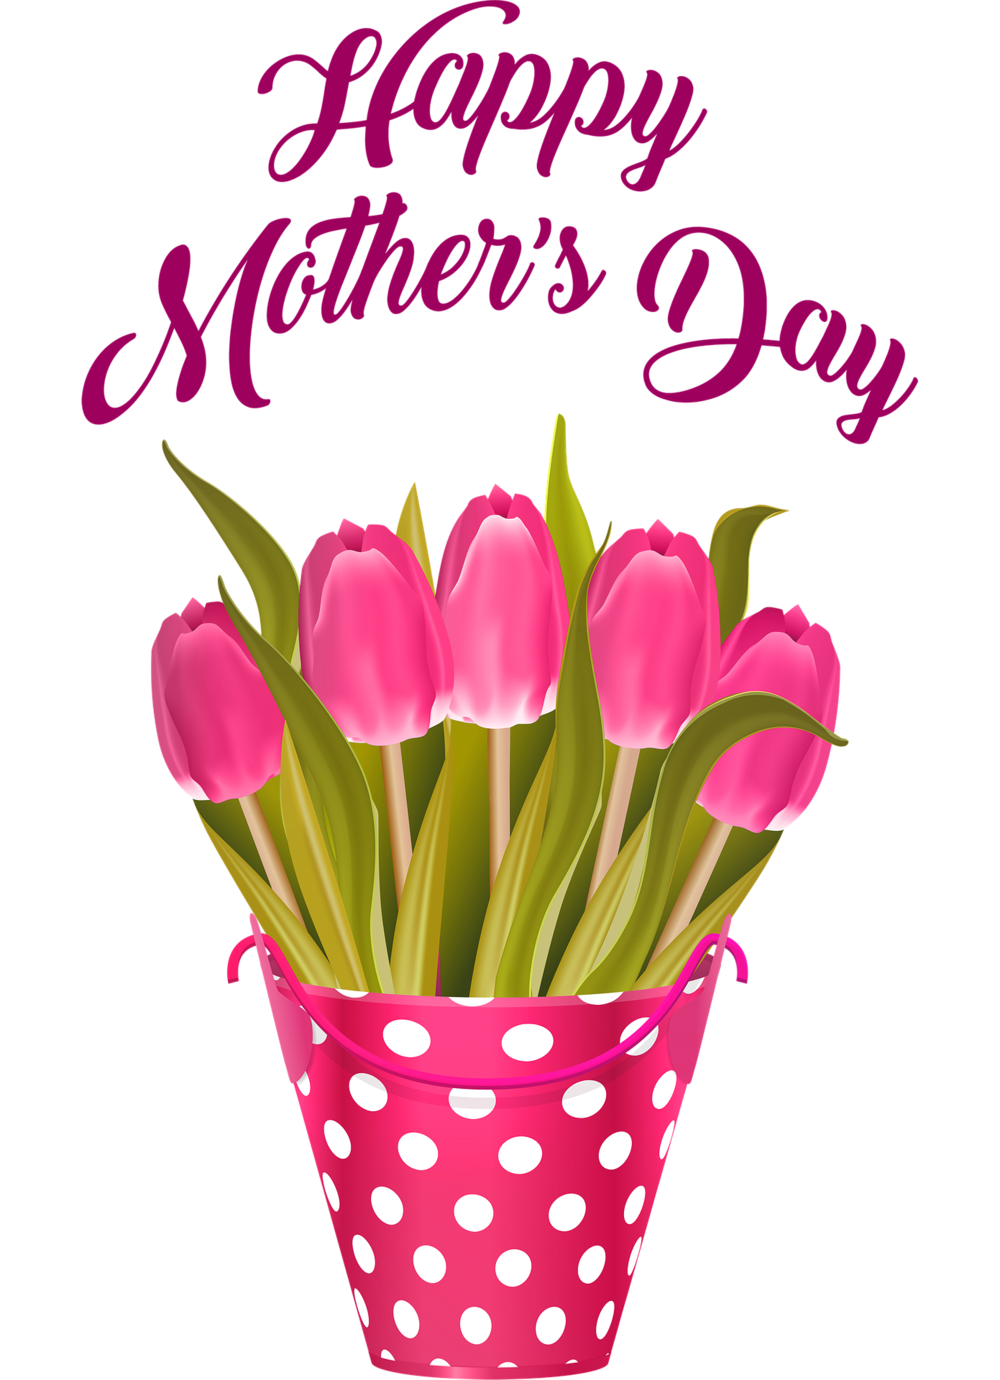 happy-mothers-day-4035401_1920.png